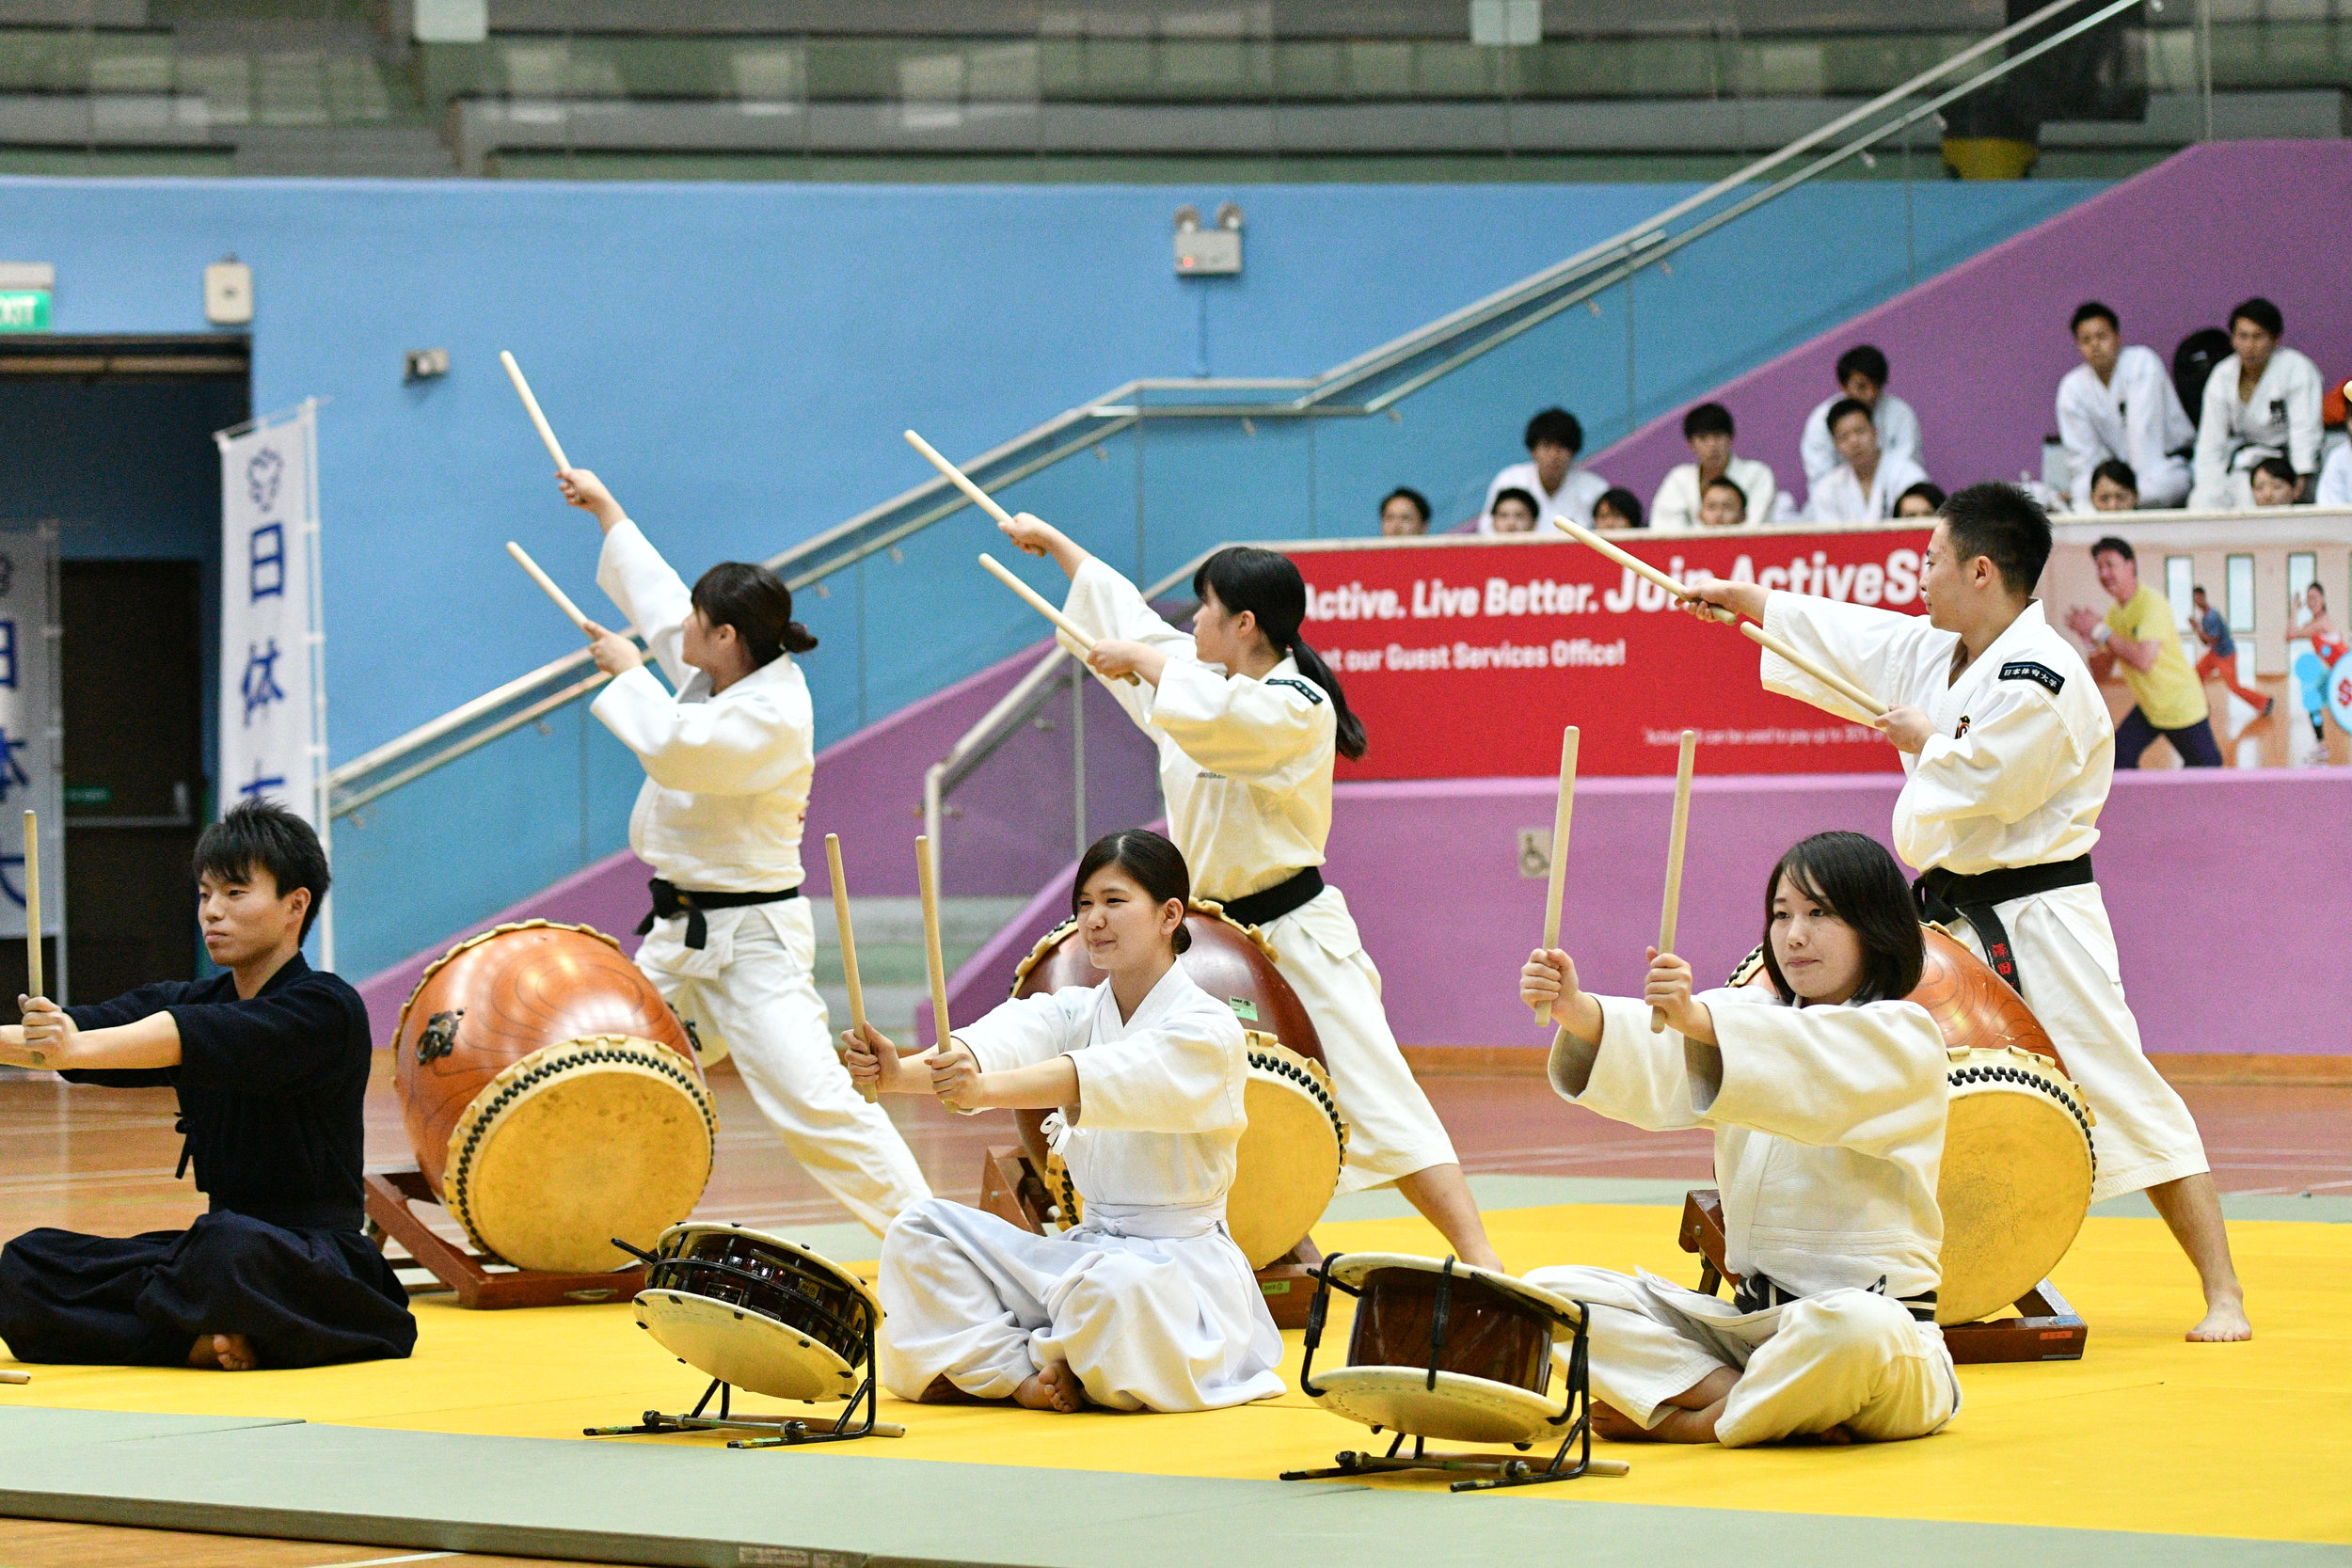 Opening ceremony by the Wadaiko, Japanese drum performance.